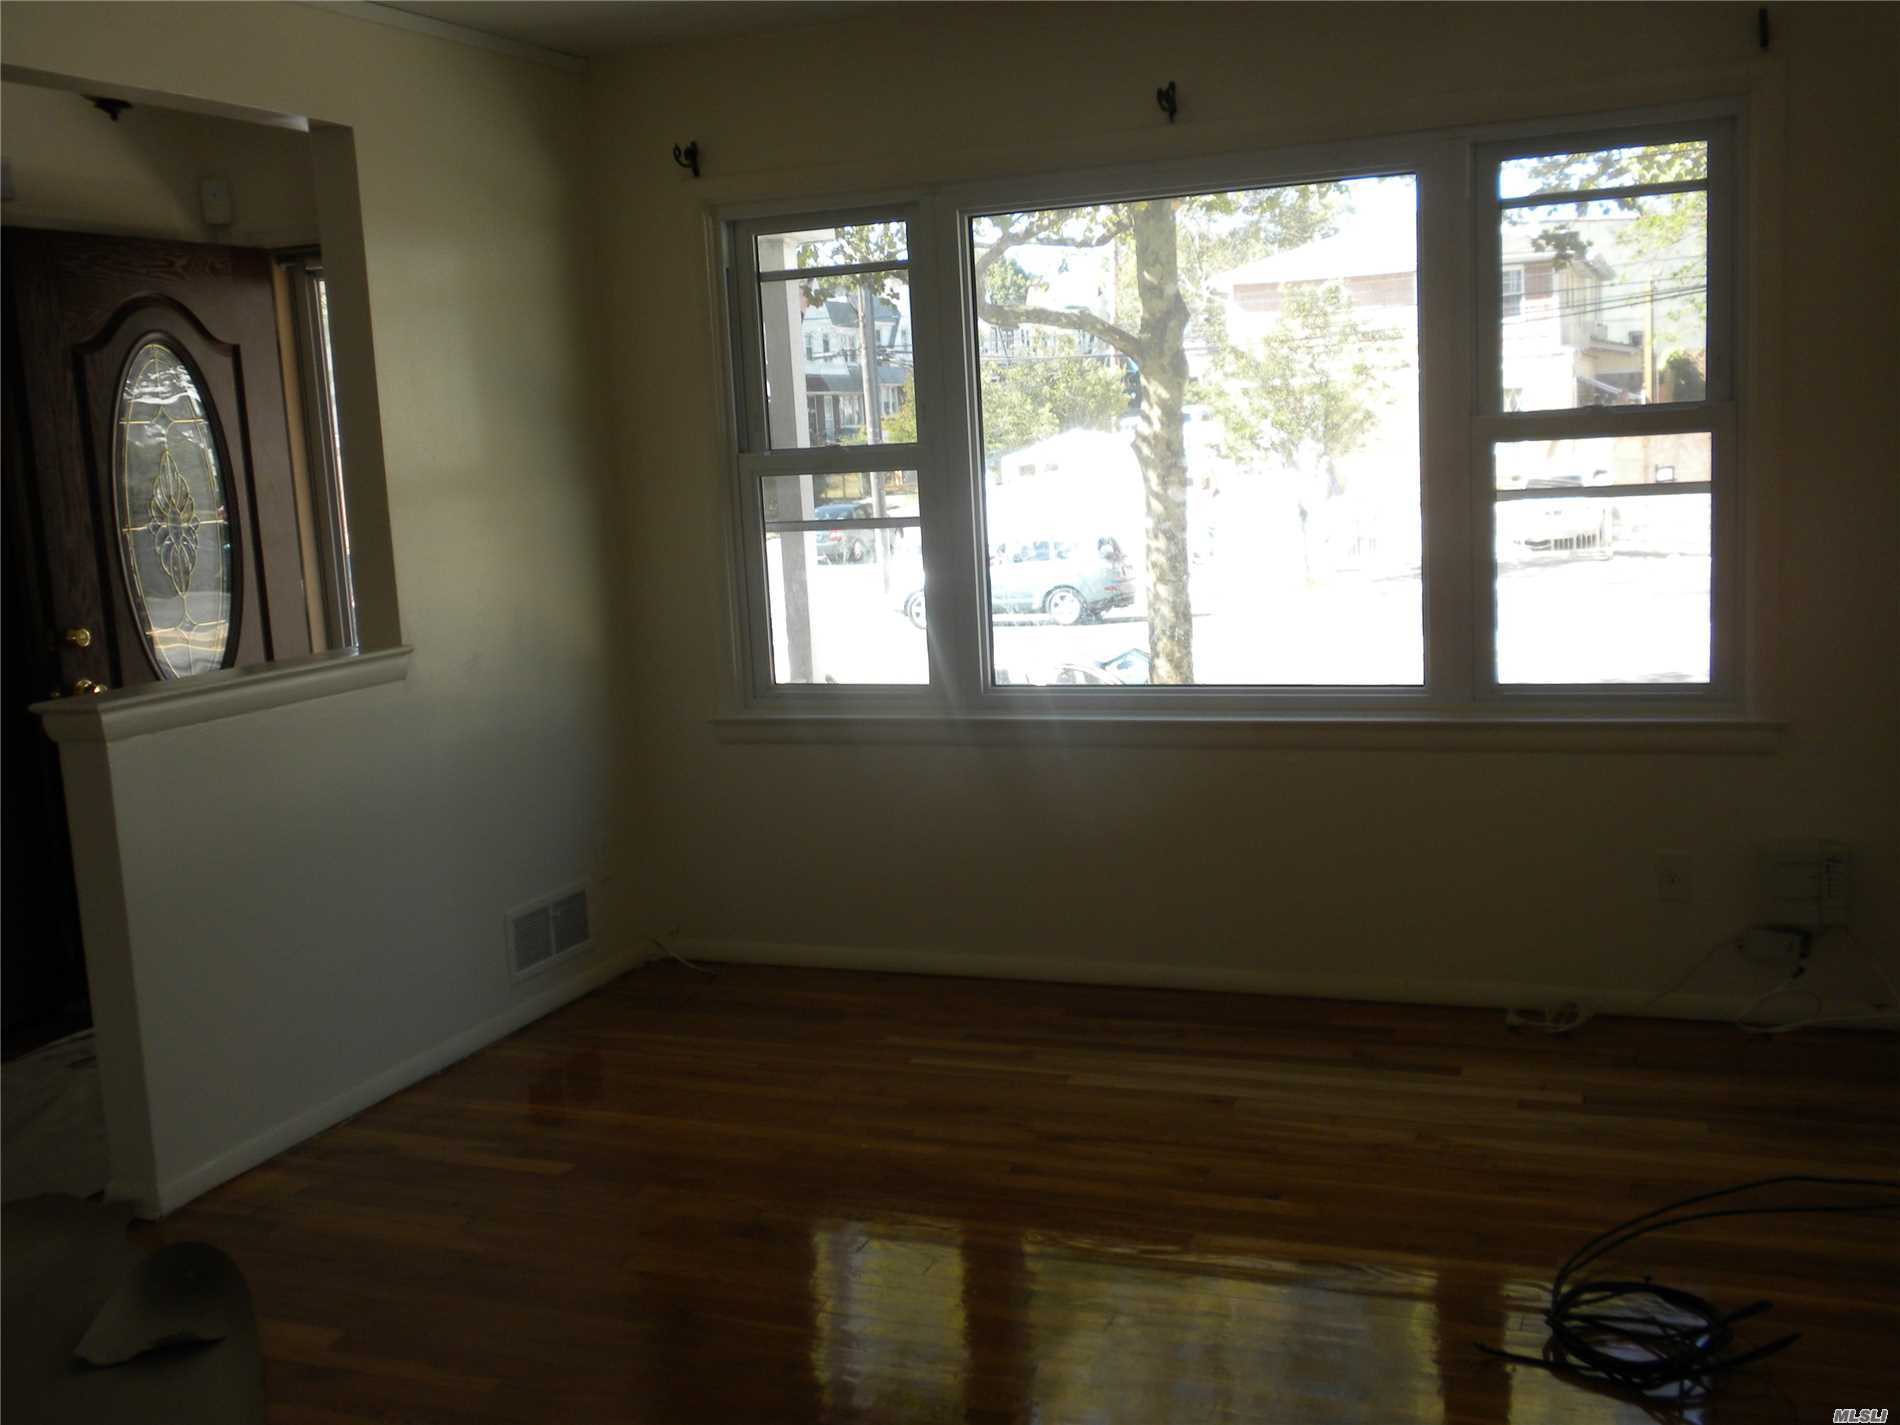 Immaculate DIAMOND Rental in Prestigious Cambria Heights - A Must See!!! Close to everything! All Utilities Included! Highly Polished Wood Flrs throughout. Renovated Kitchen with Stainless Steel appliances & New Cabinets. No pets. Landlord requires Income Verification and Credit Report.